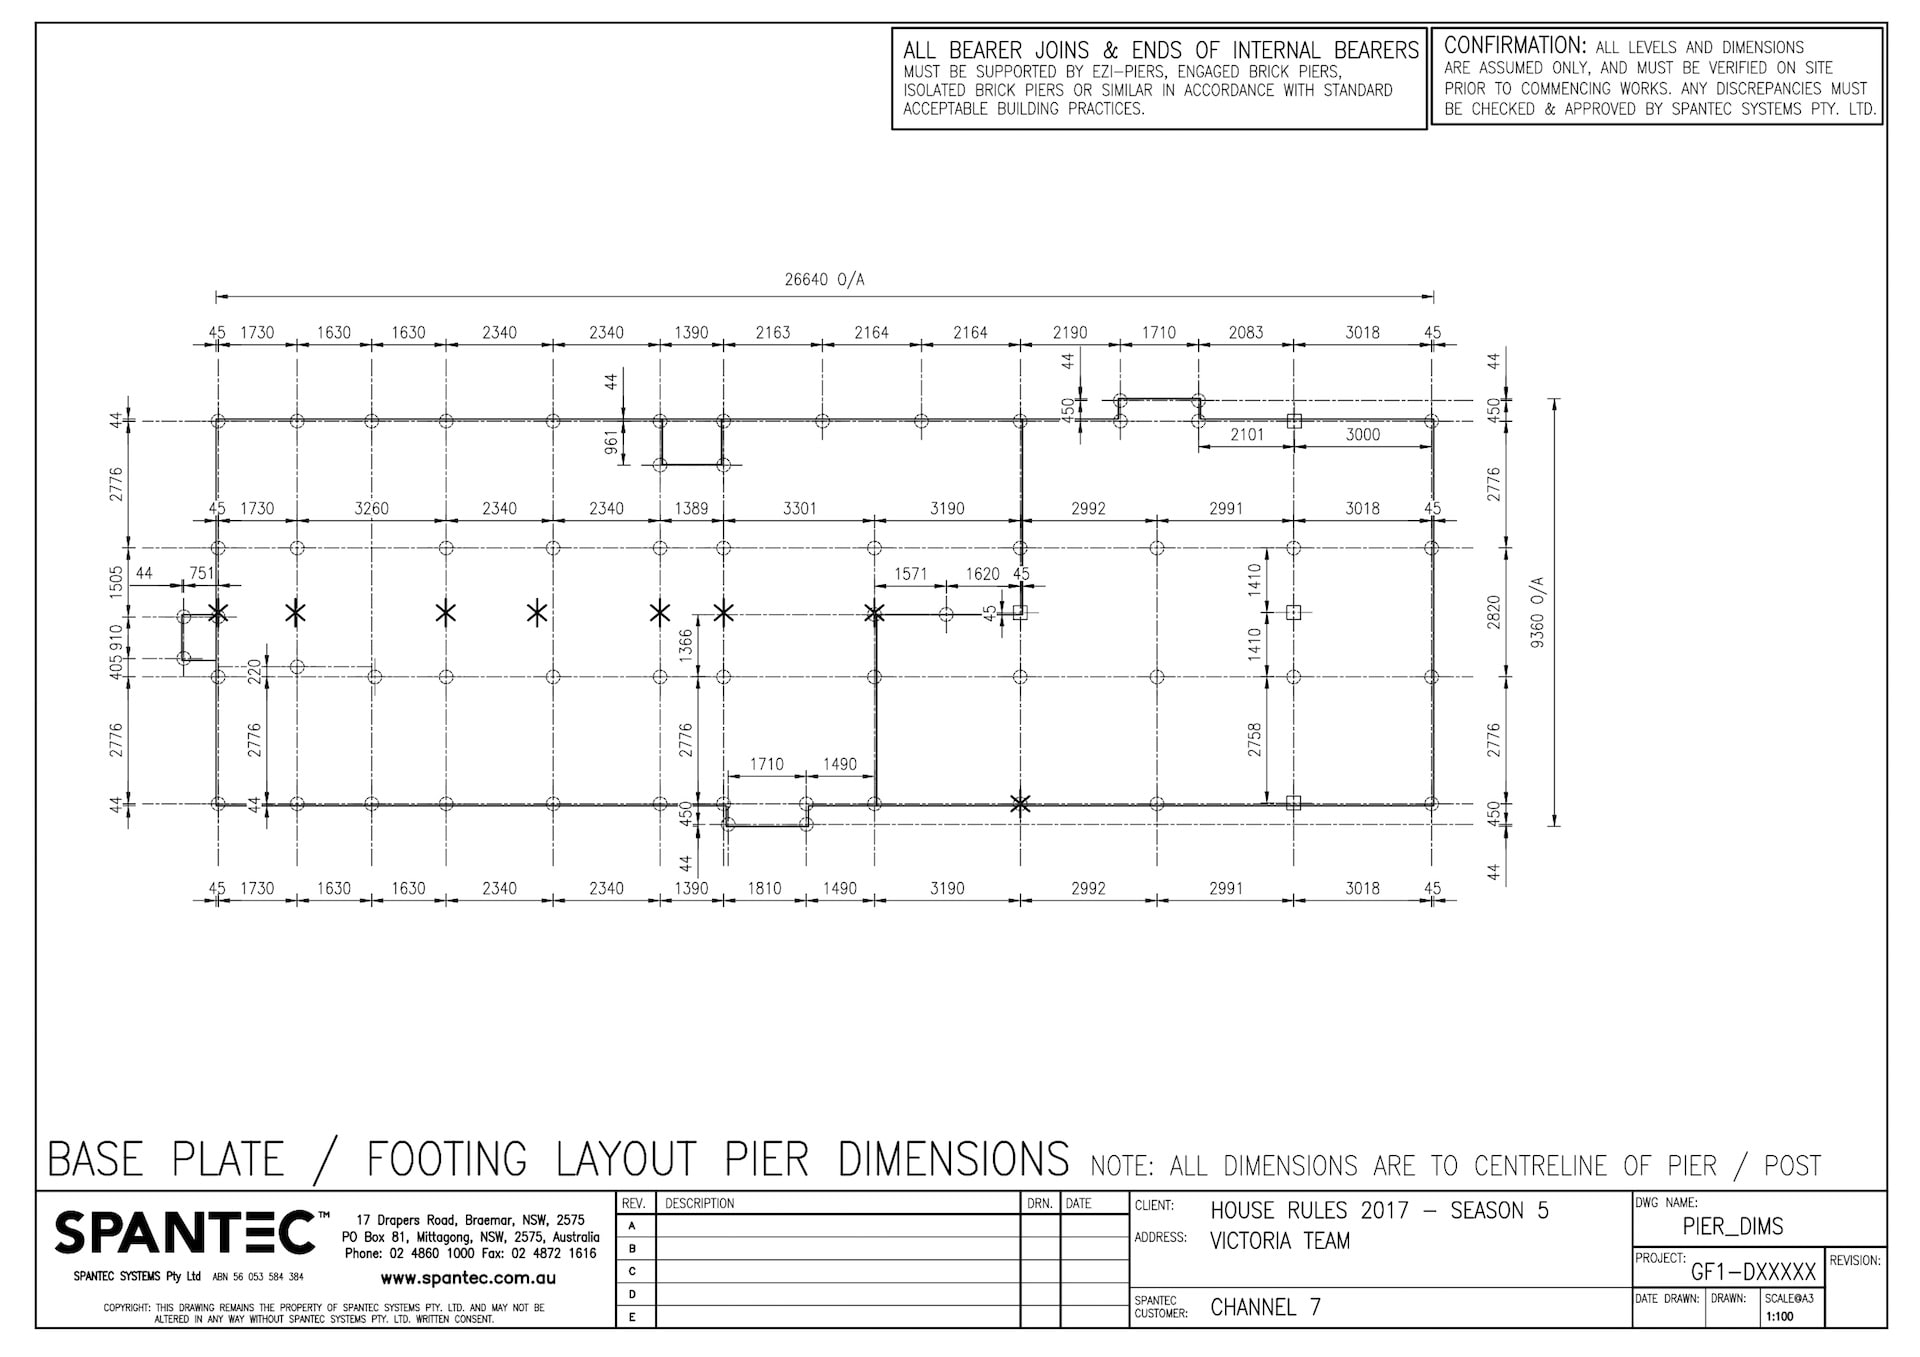 Base Plate Footing Layout Pier Dimensions